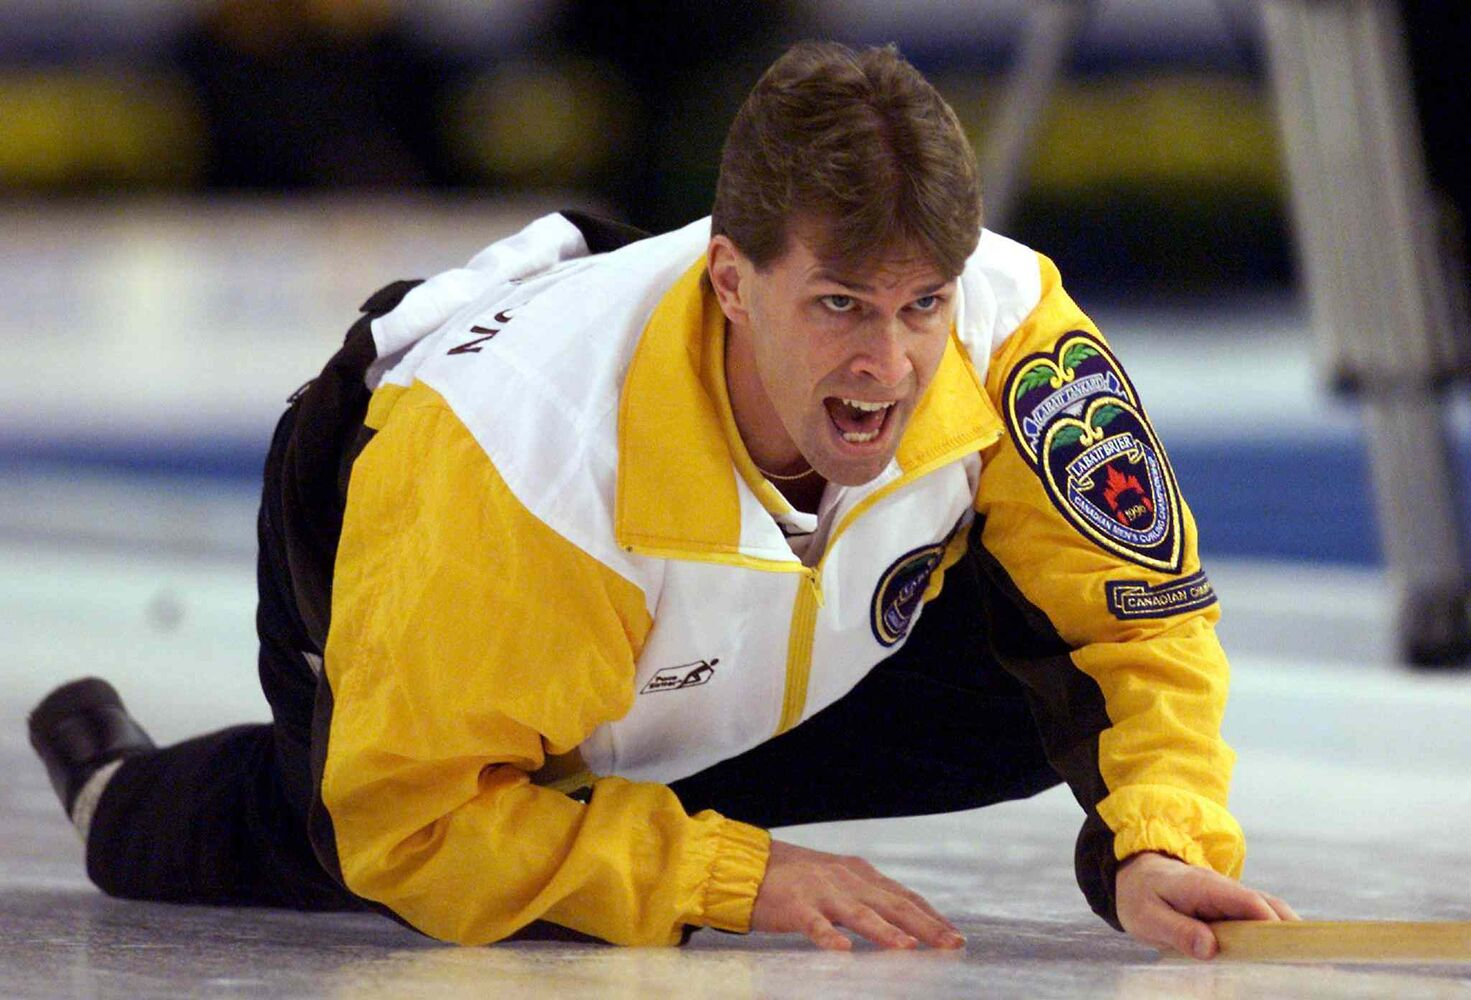 Stoughton yells for his team to sweep during the Brier final against Quebec in 1999. (Chuck Stoody / The Canadian Press Files)